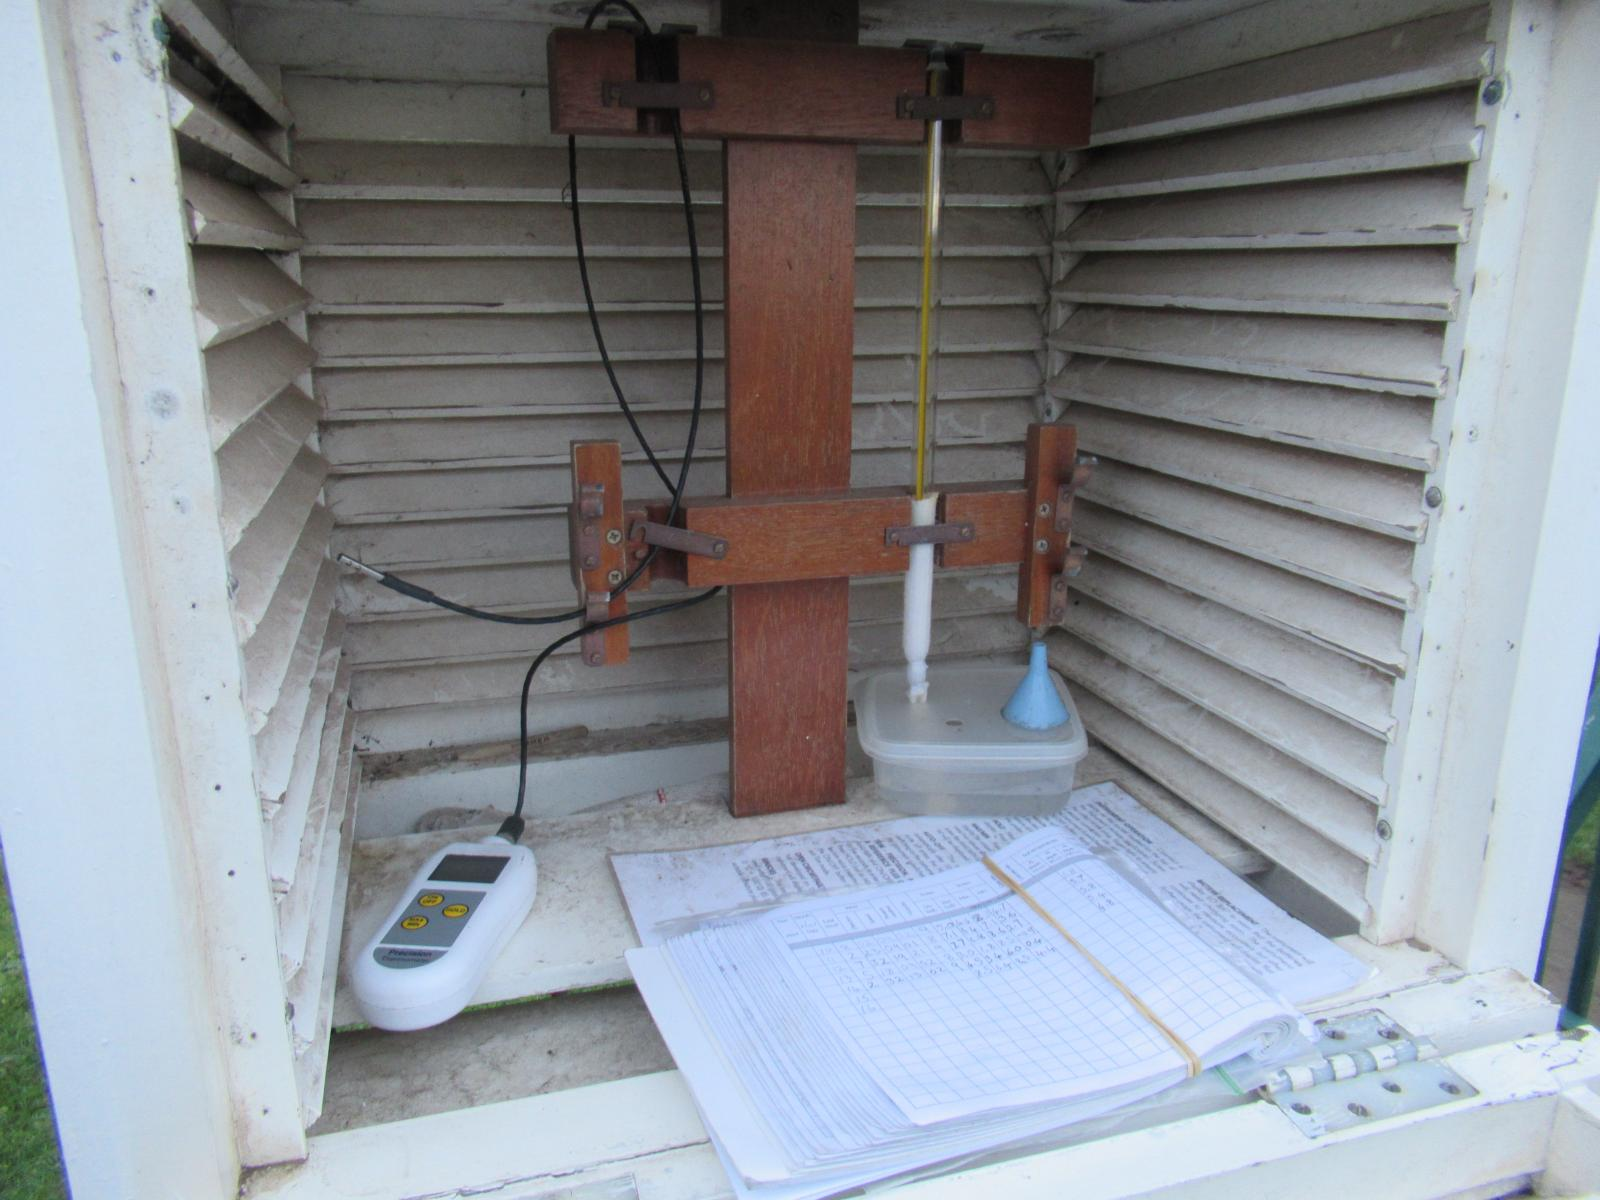 Stevenson screen thermometer dry and wet bulb